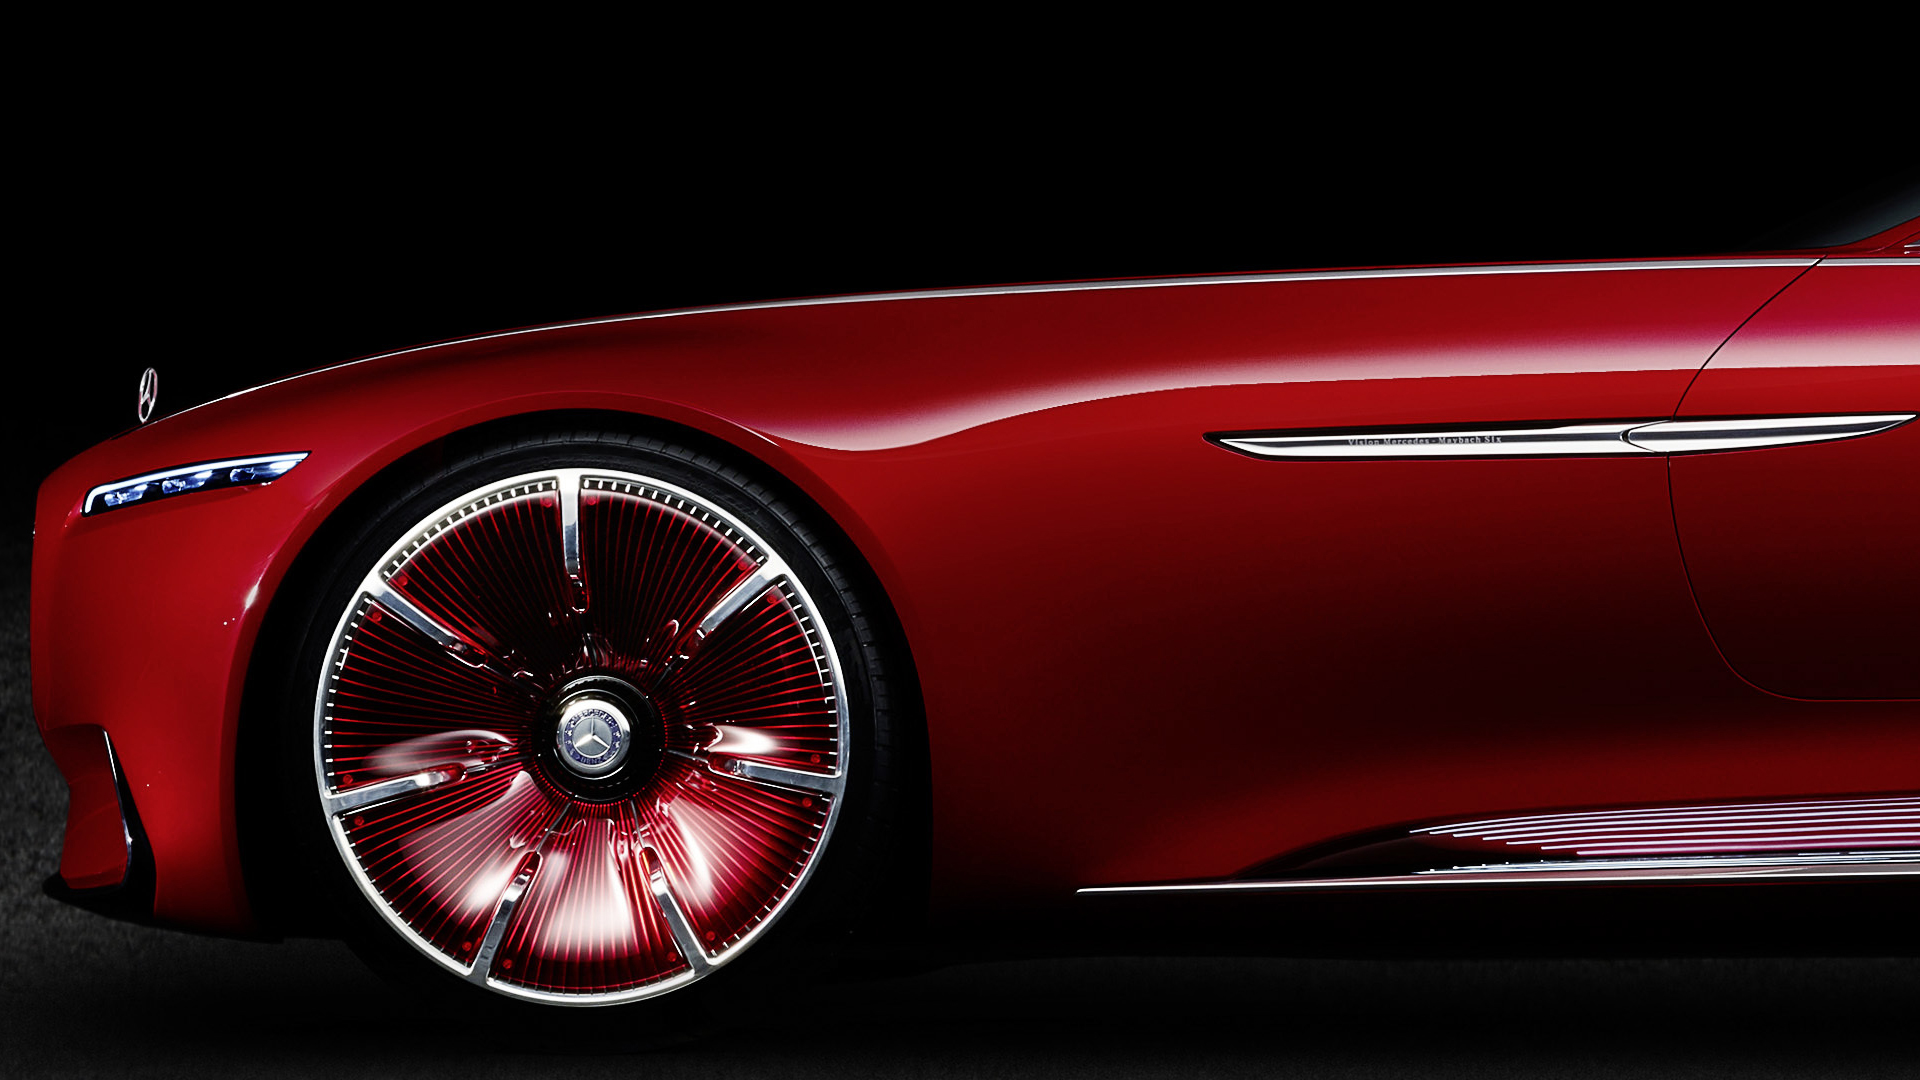 Vision Mercedes Maybach 6 - Daimler - 2016 - wheel / jante